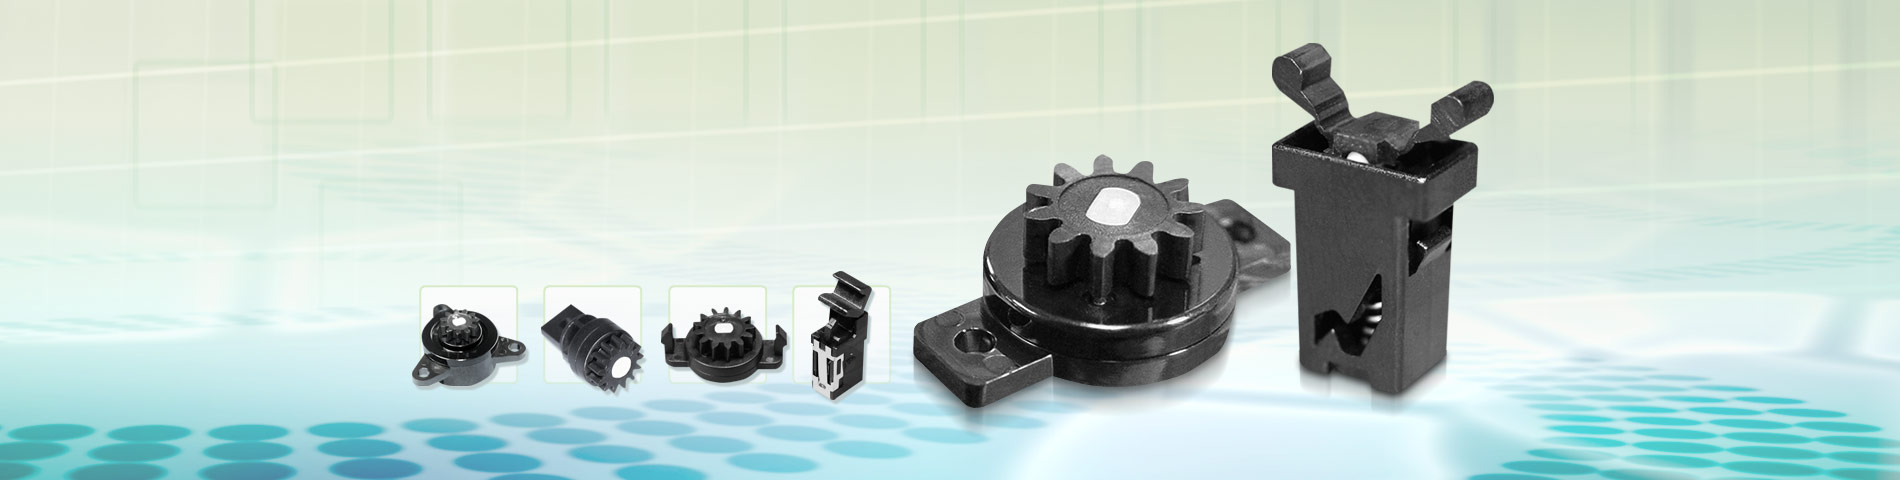 Rotary Damper & Push Latch The best plastic parts you've ever seen